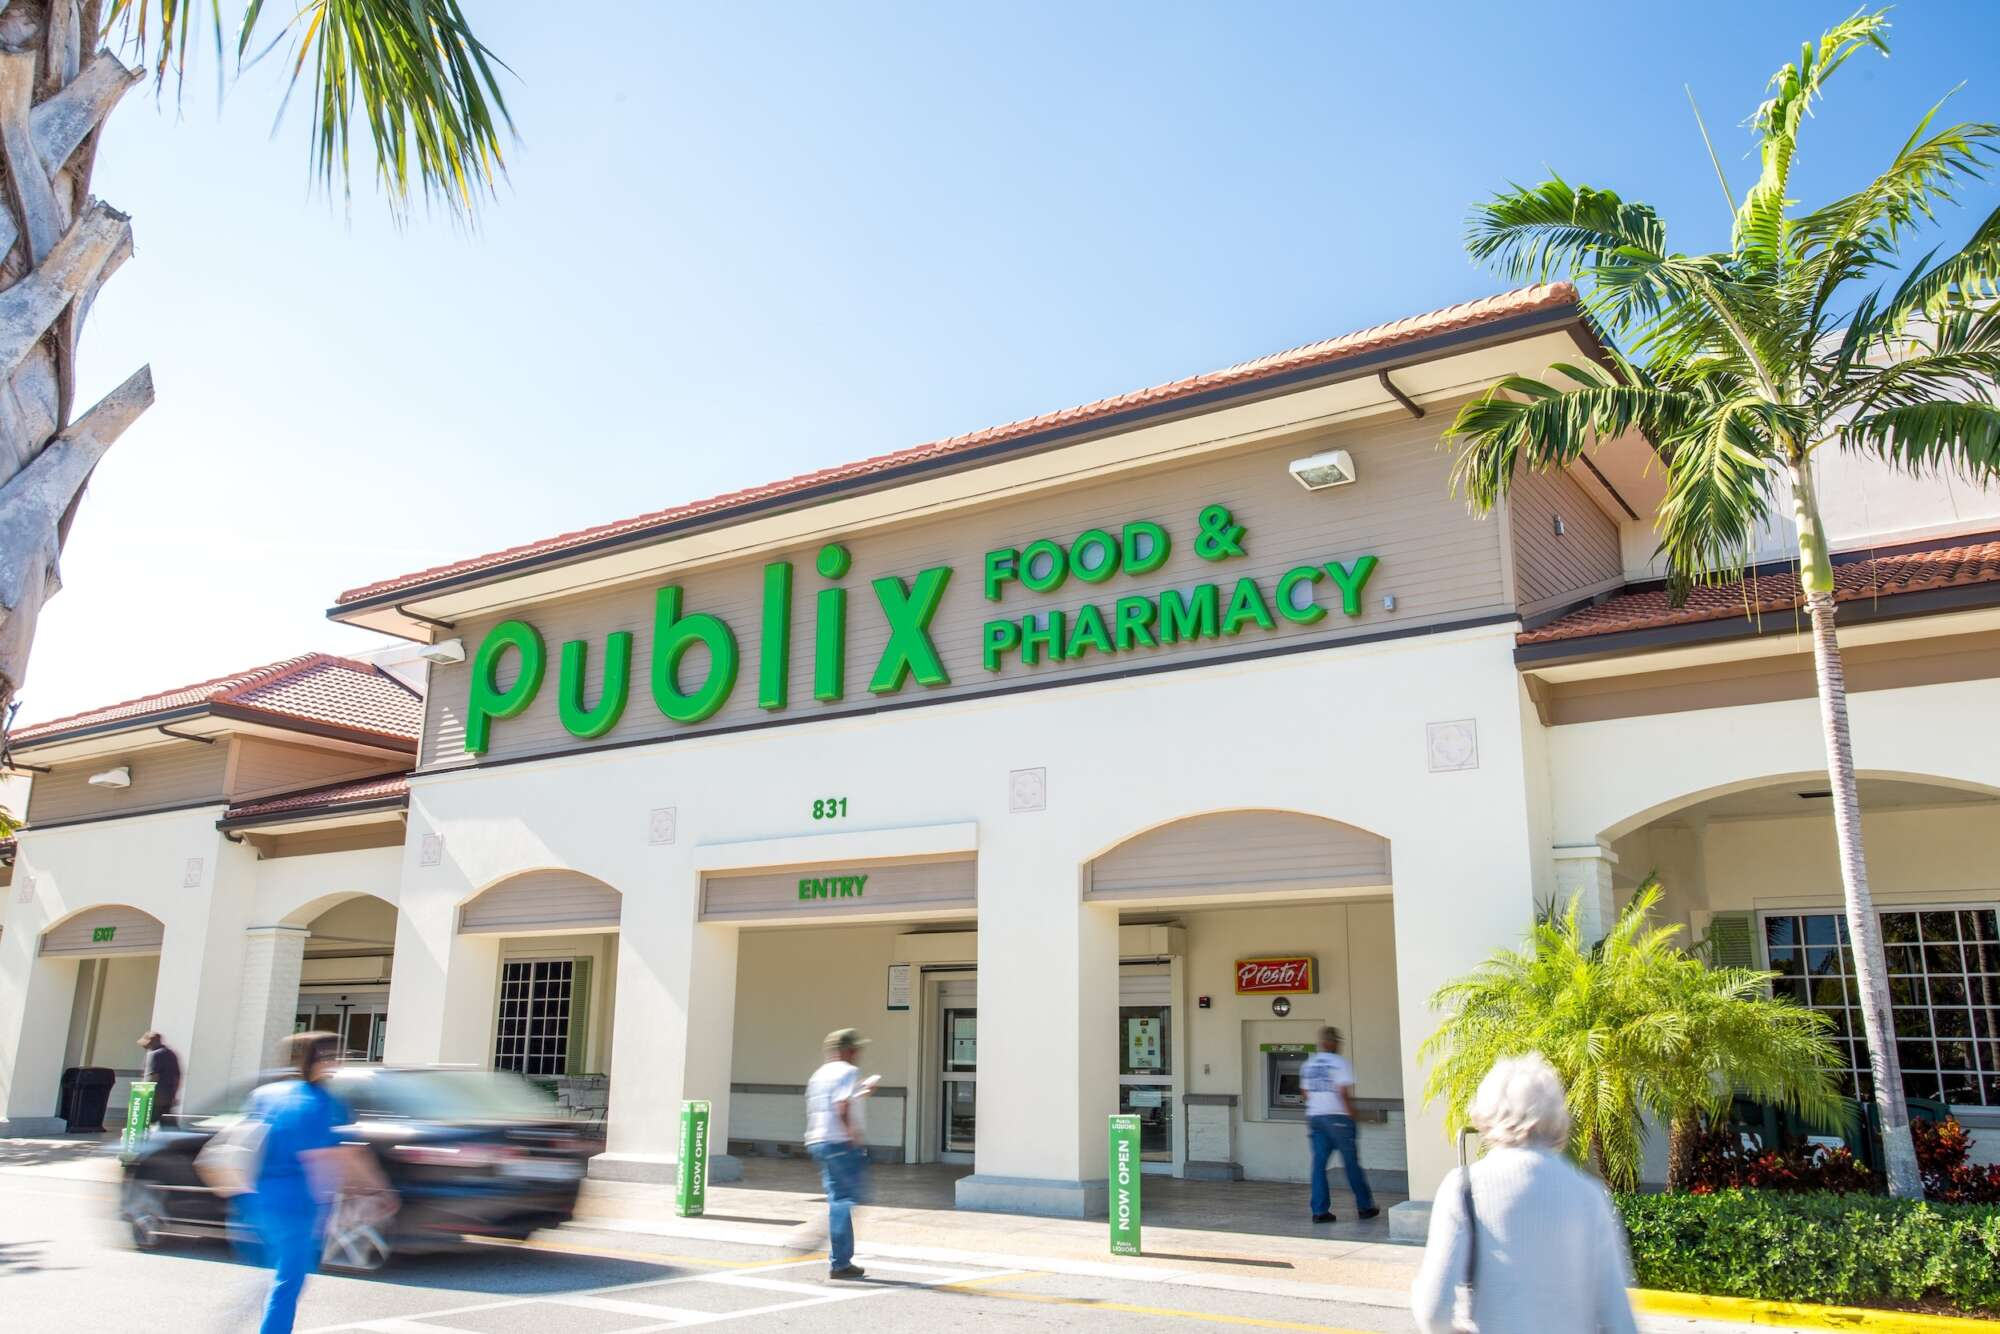 Exterior street level view of Publix grocery store at Village Commons with people and cars passing by